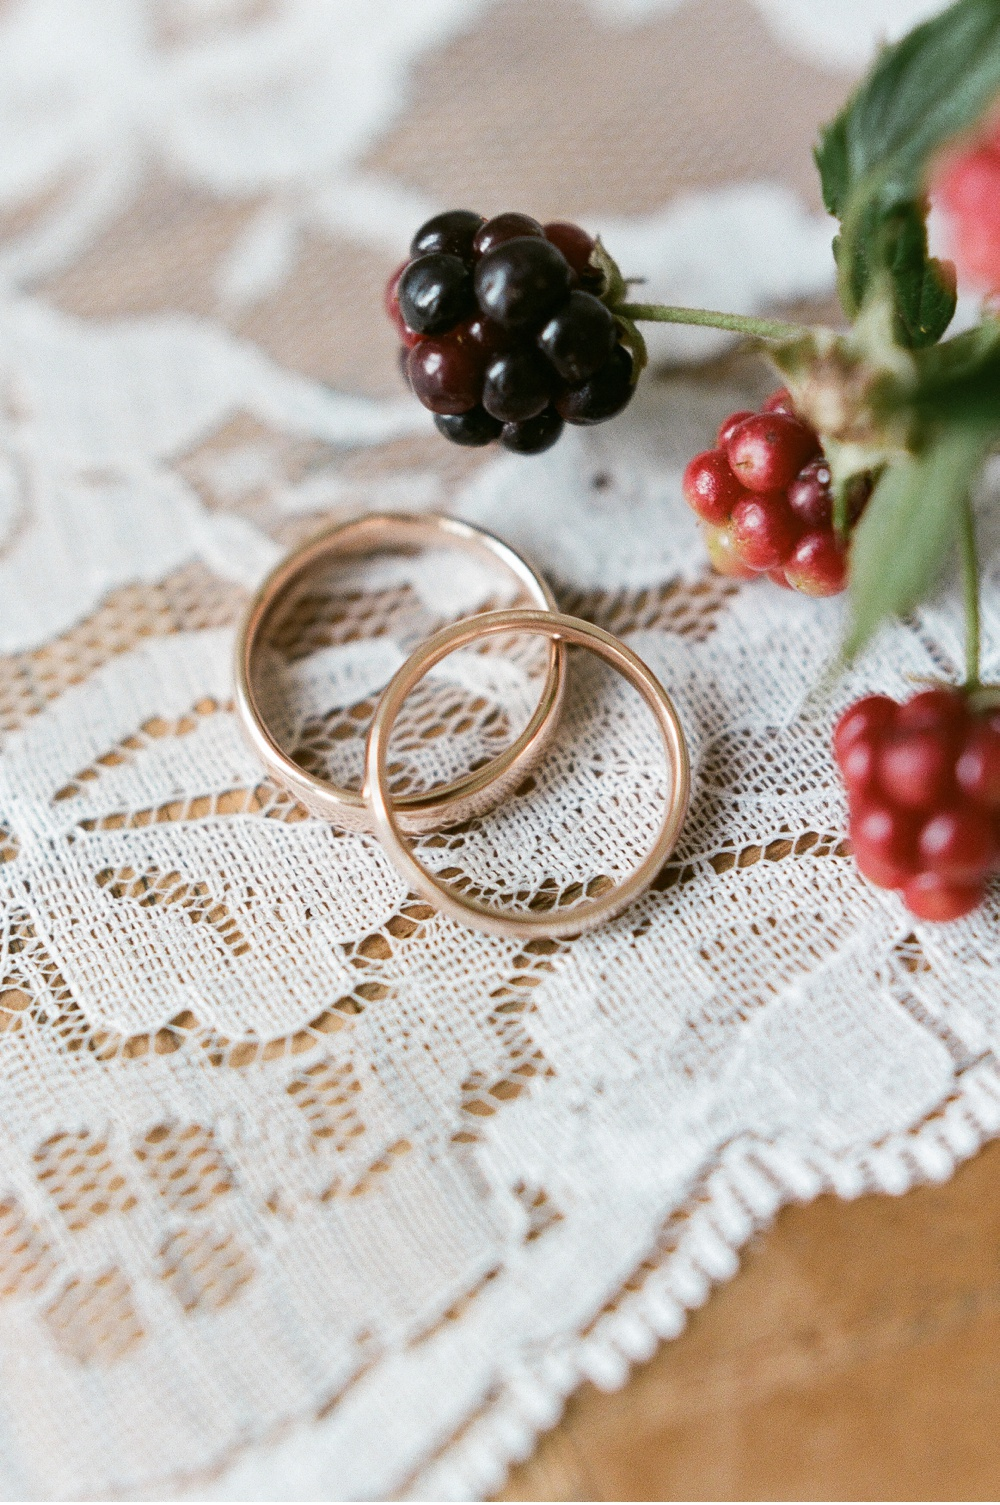 Paris_Provence_Destination_Wedding_Photographer©MadalinaSheldon_0040.jpg